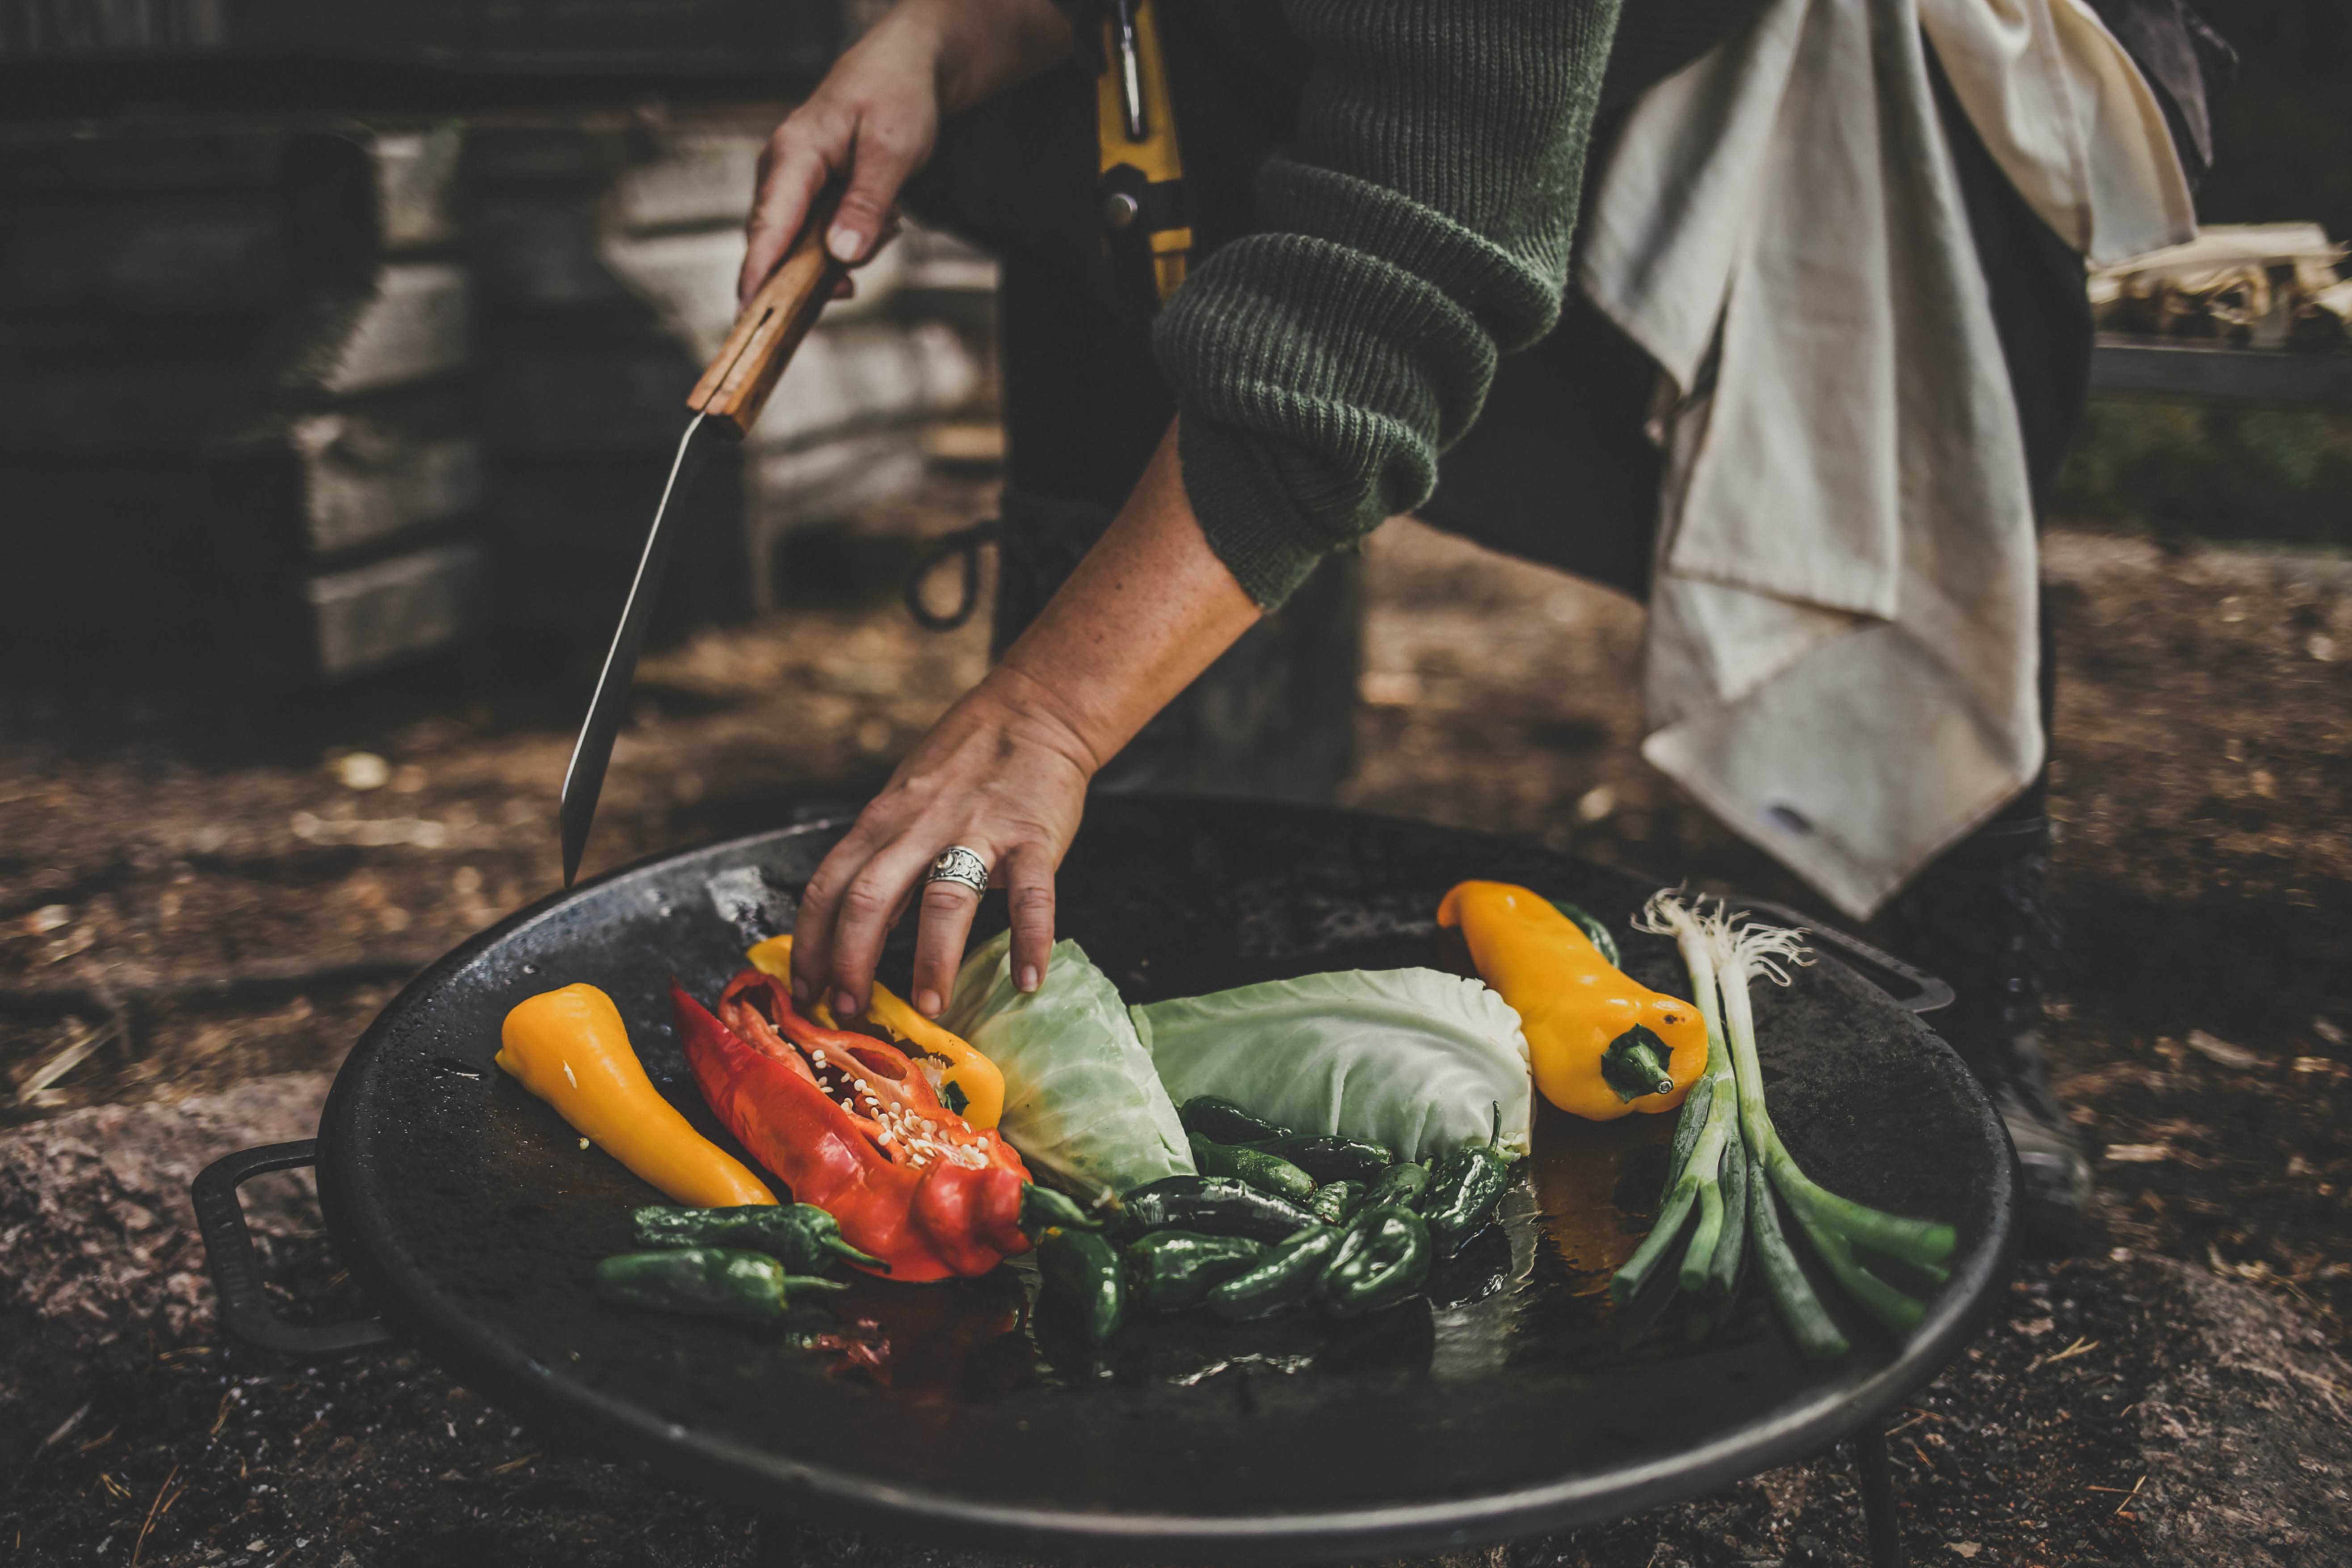 Hiking and outdoor cooking